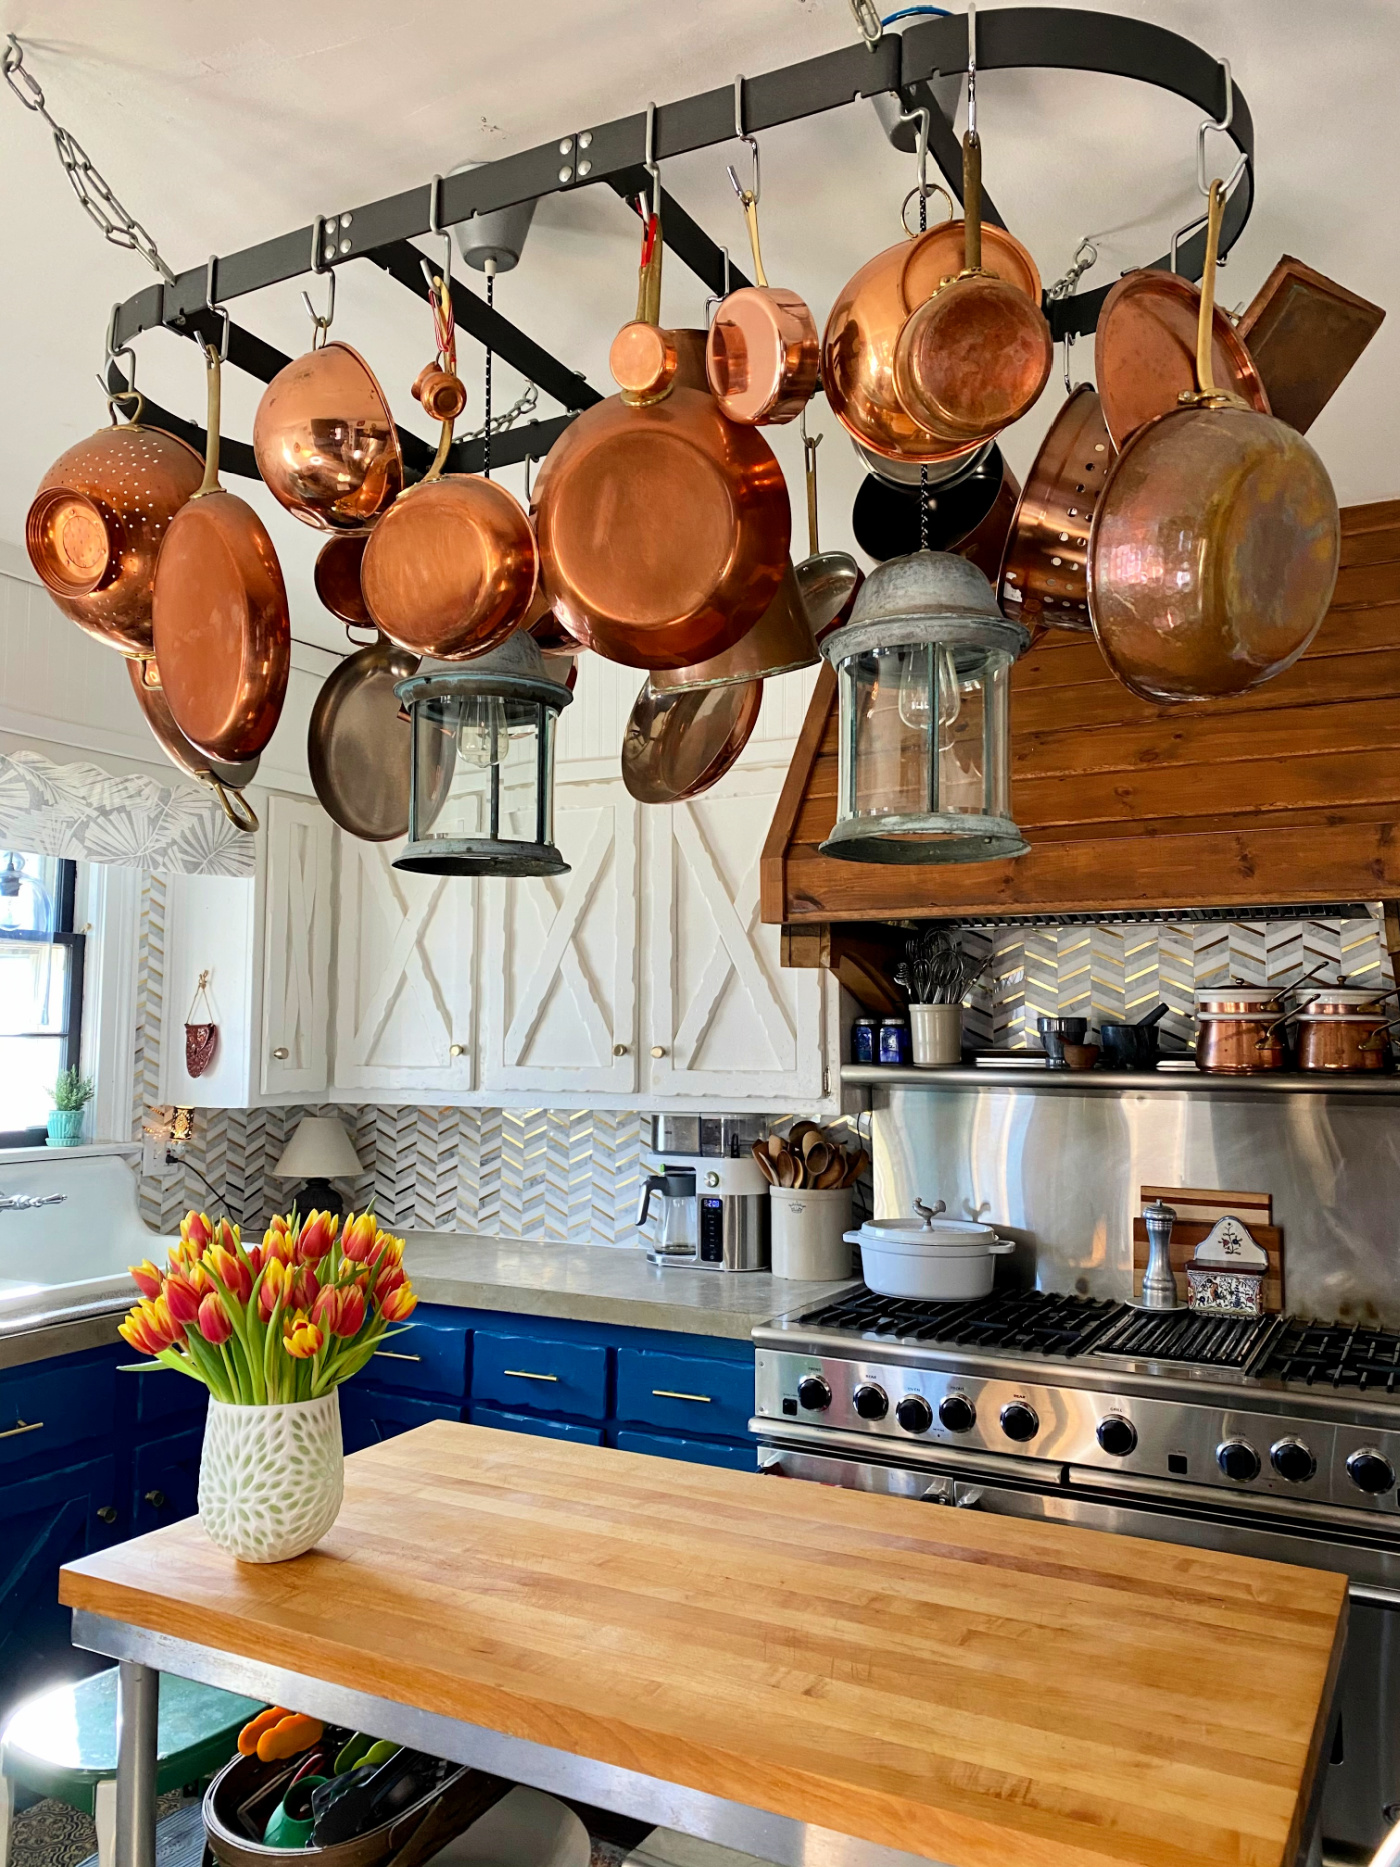 Eclectic Home Tour of Farmhouse 1820 - love the copper pots hung over the kitchen island